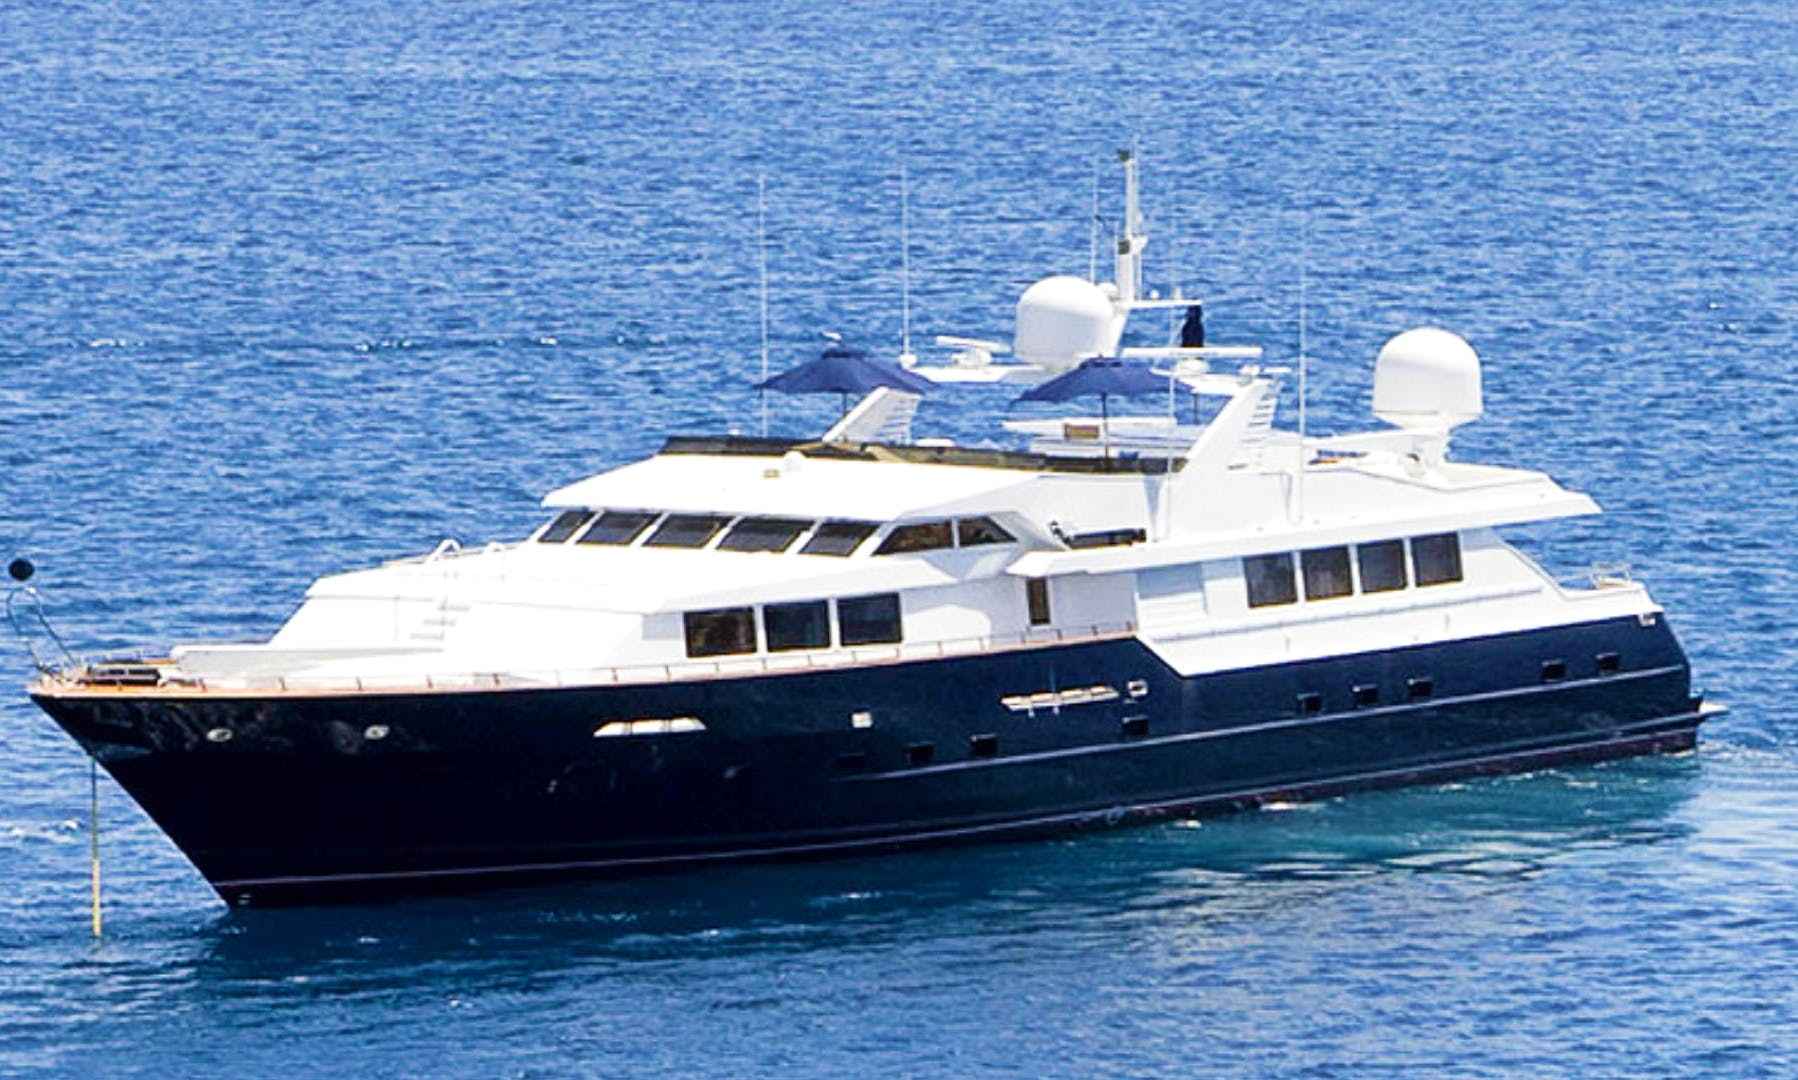 Astondoa 102 Motor Yacht Charter for Up to 18 People in Phuket, Thailand